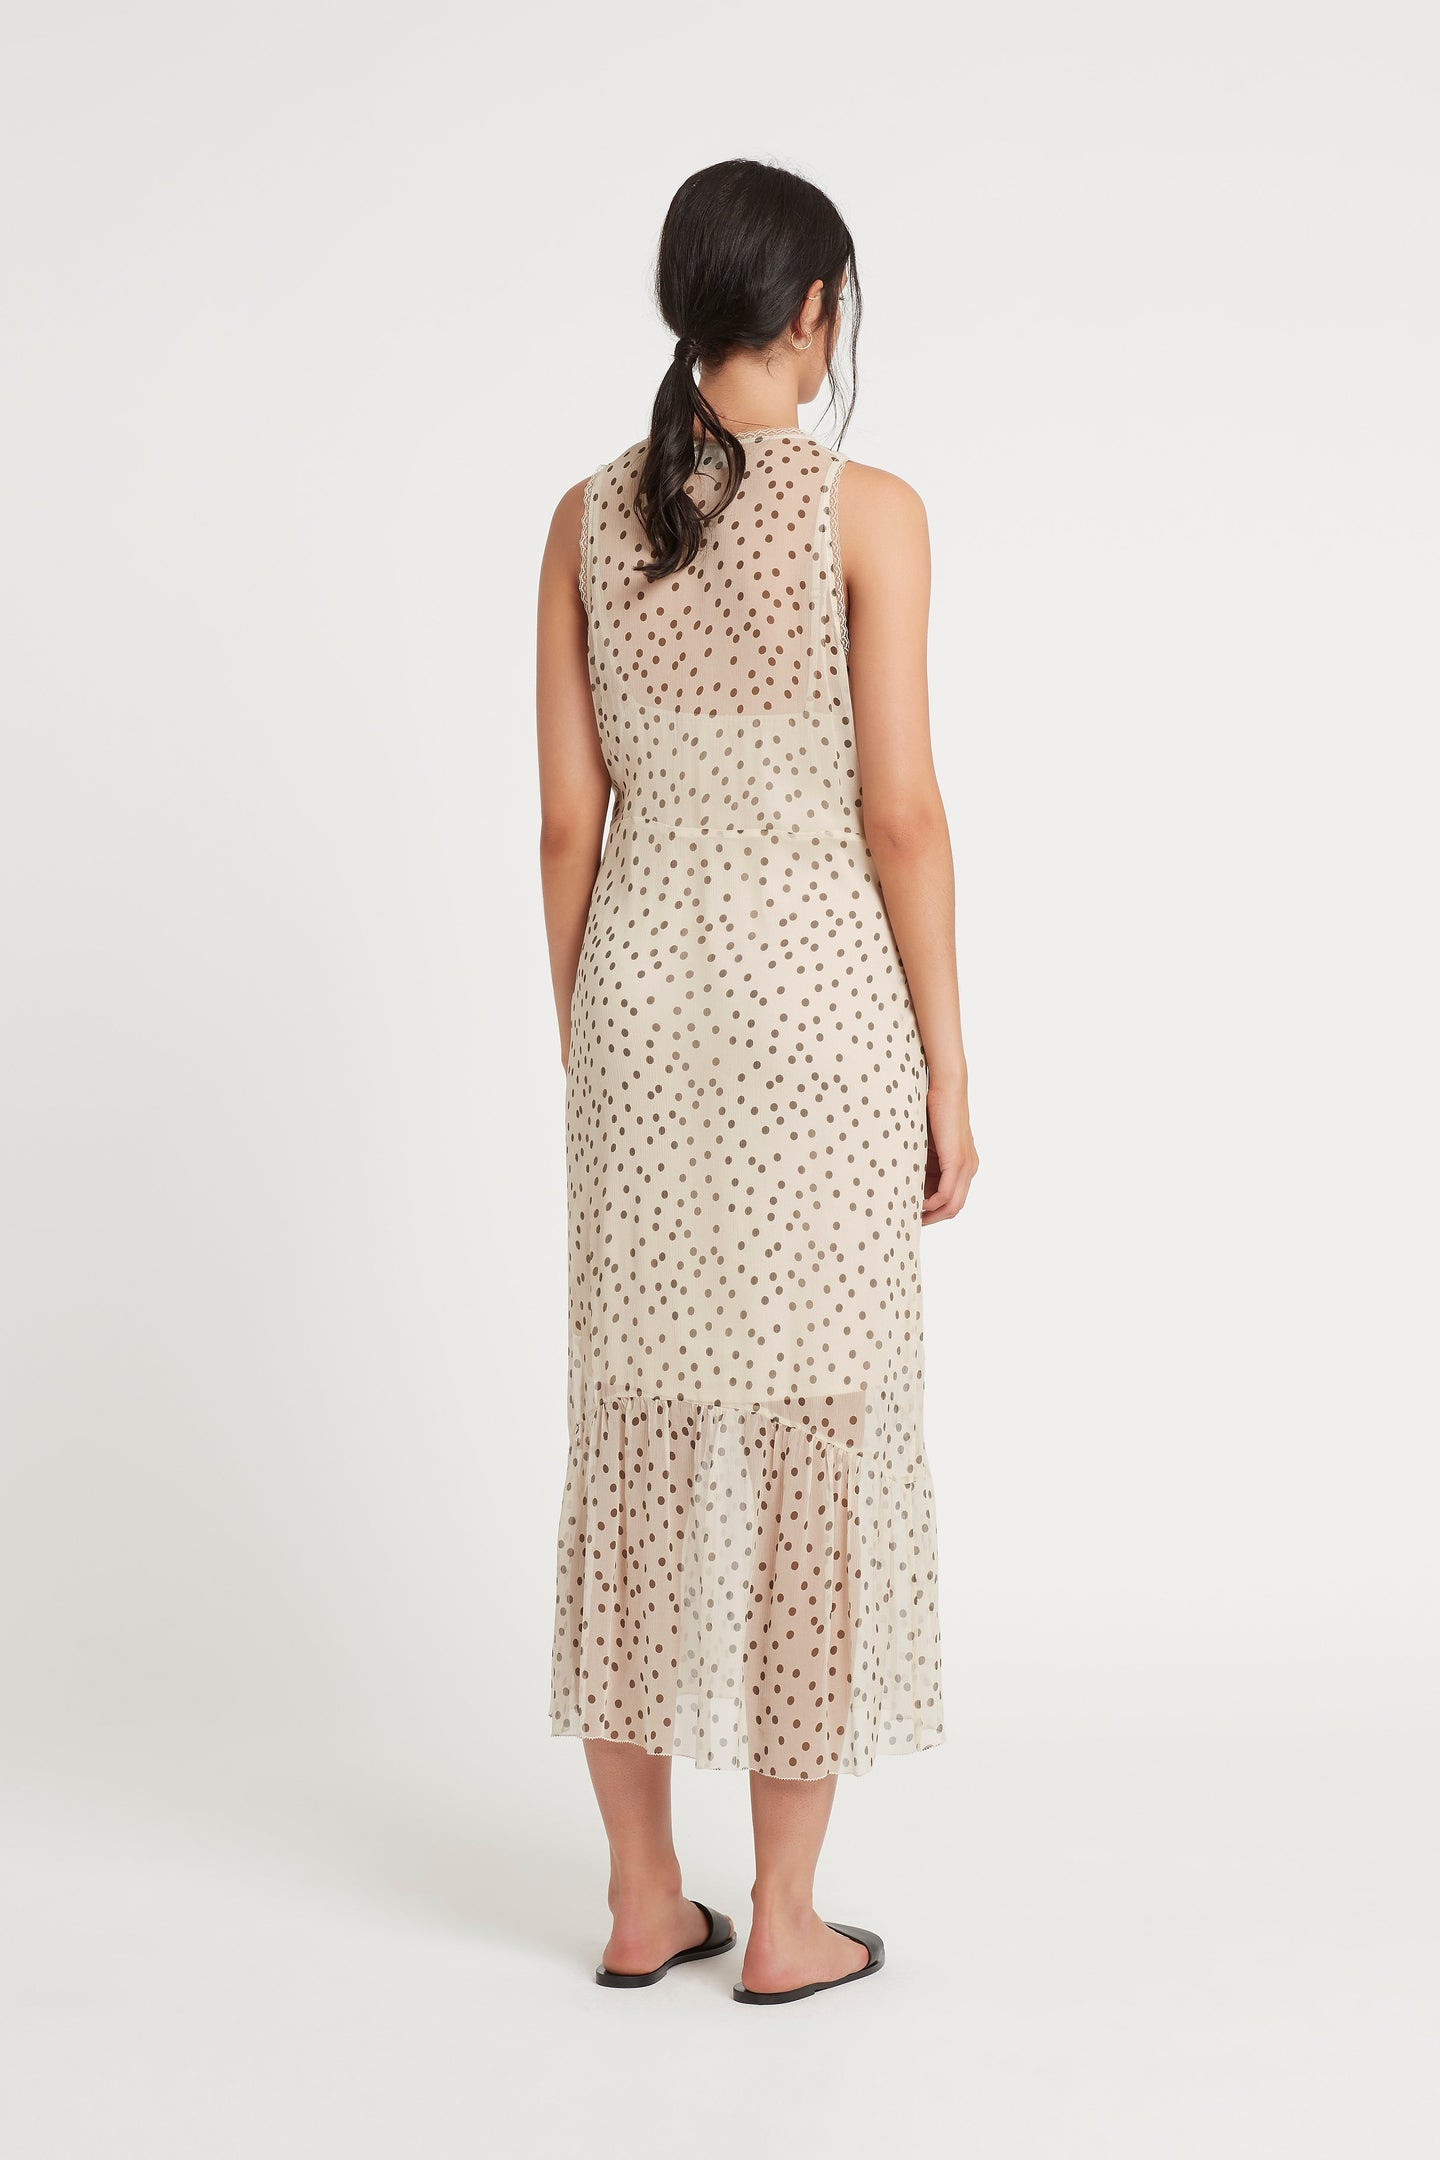 SIR the label ISABELLA SLIP DRESS BONE POLKA DOT